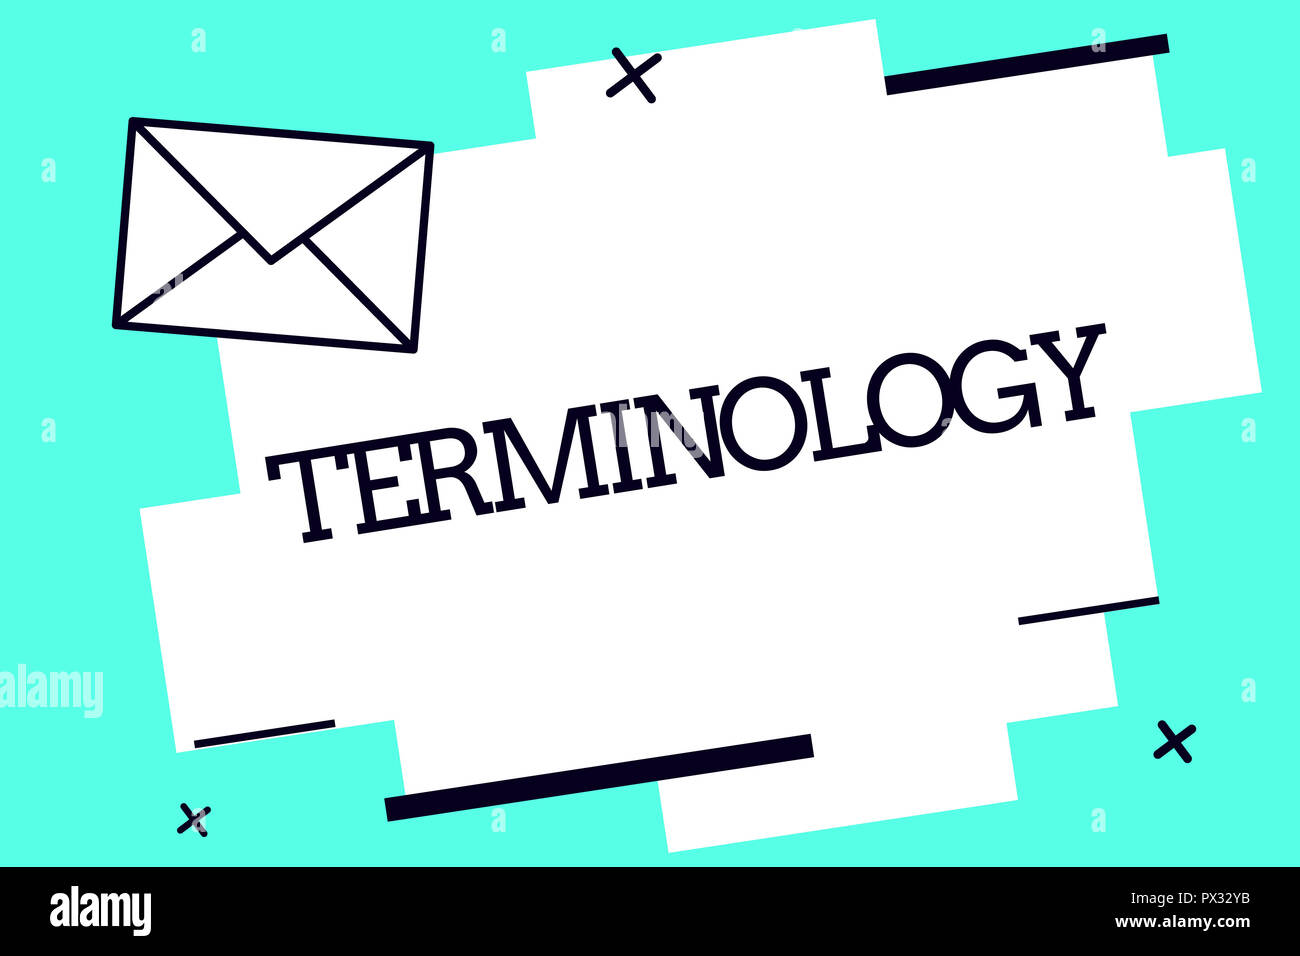 application terminology meaning